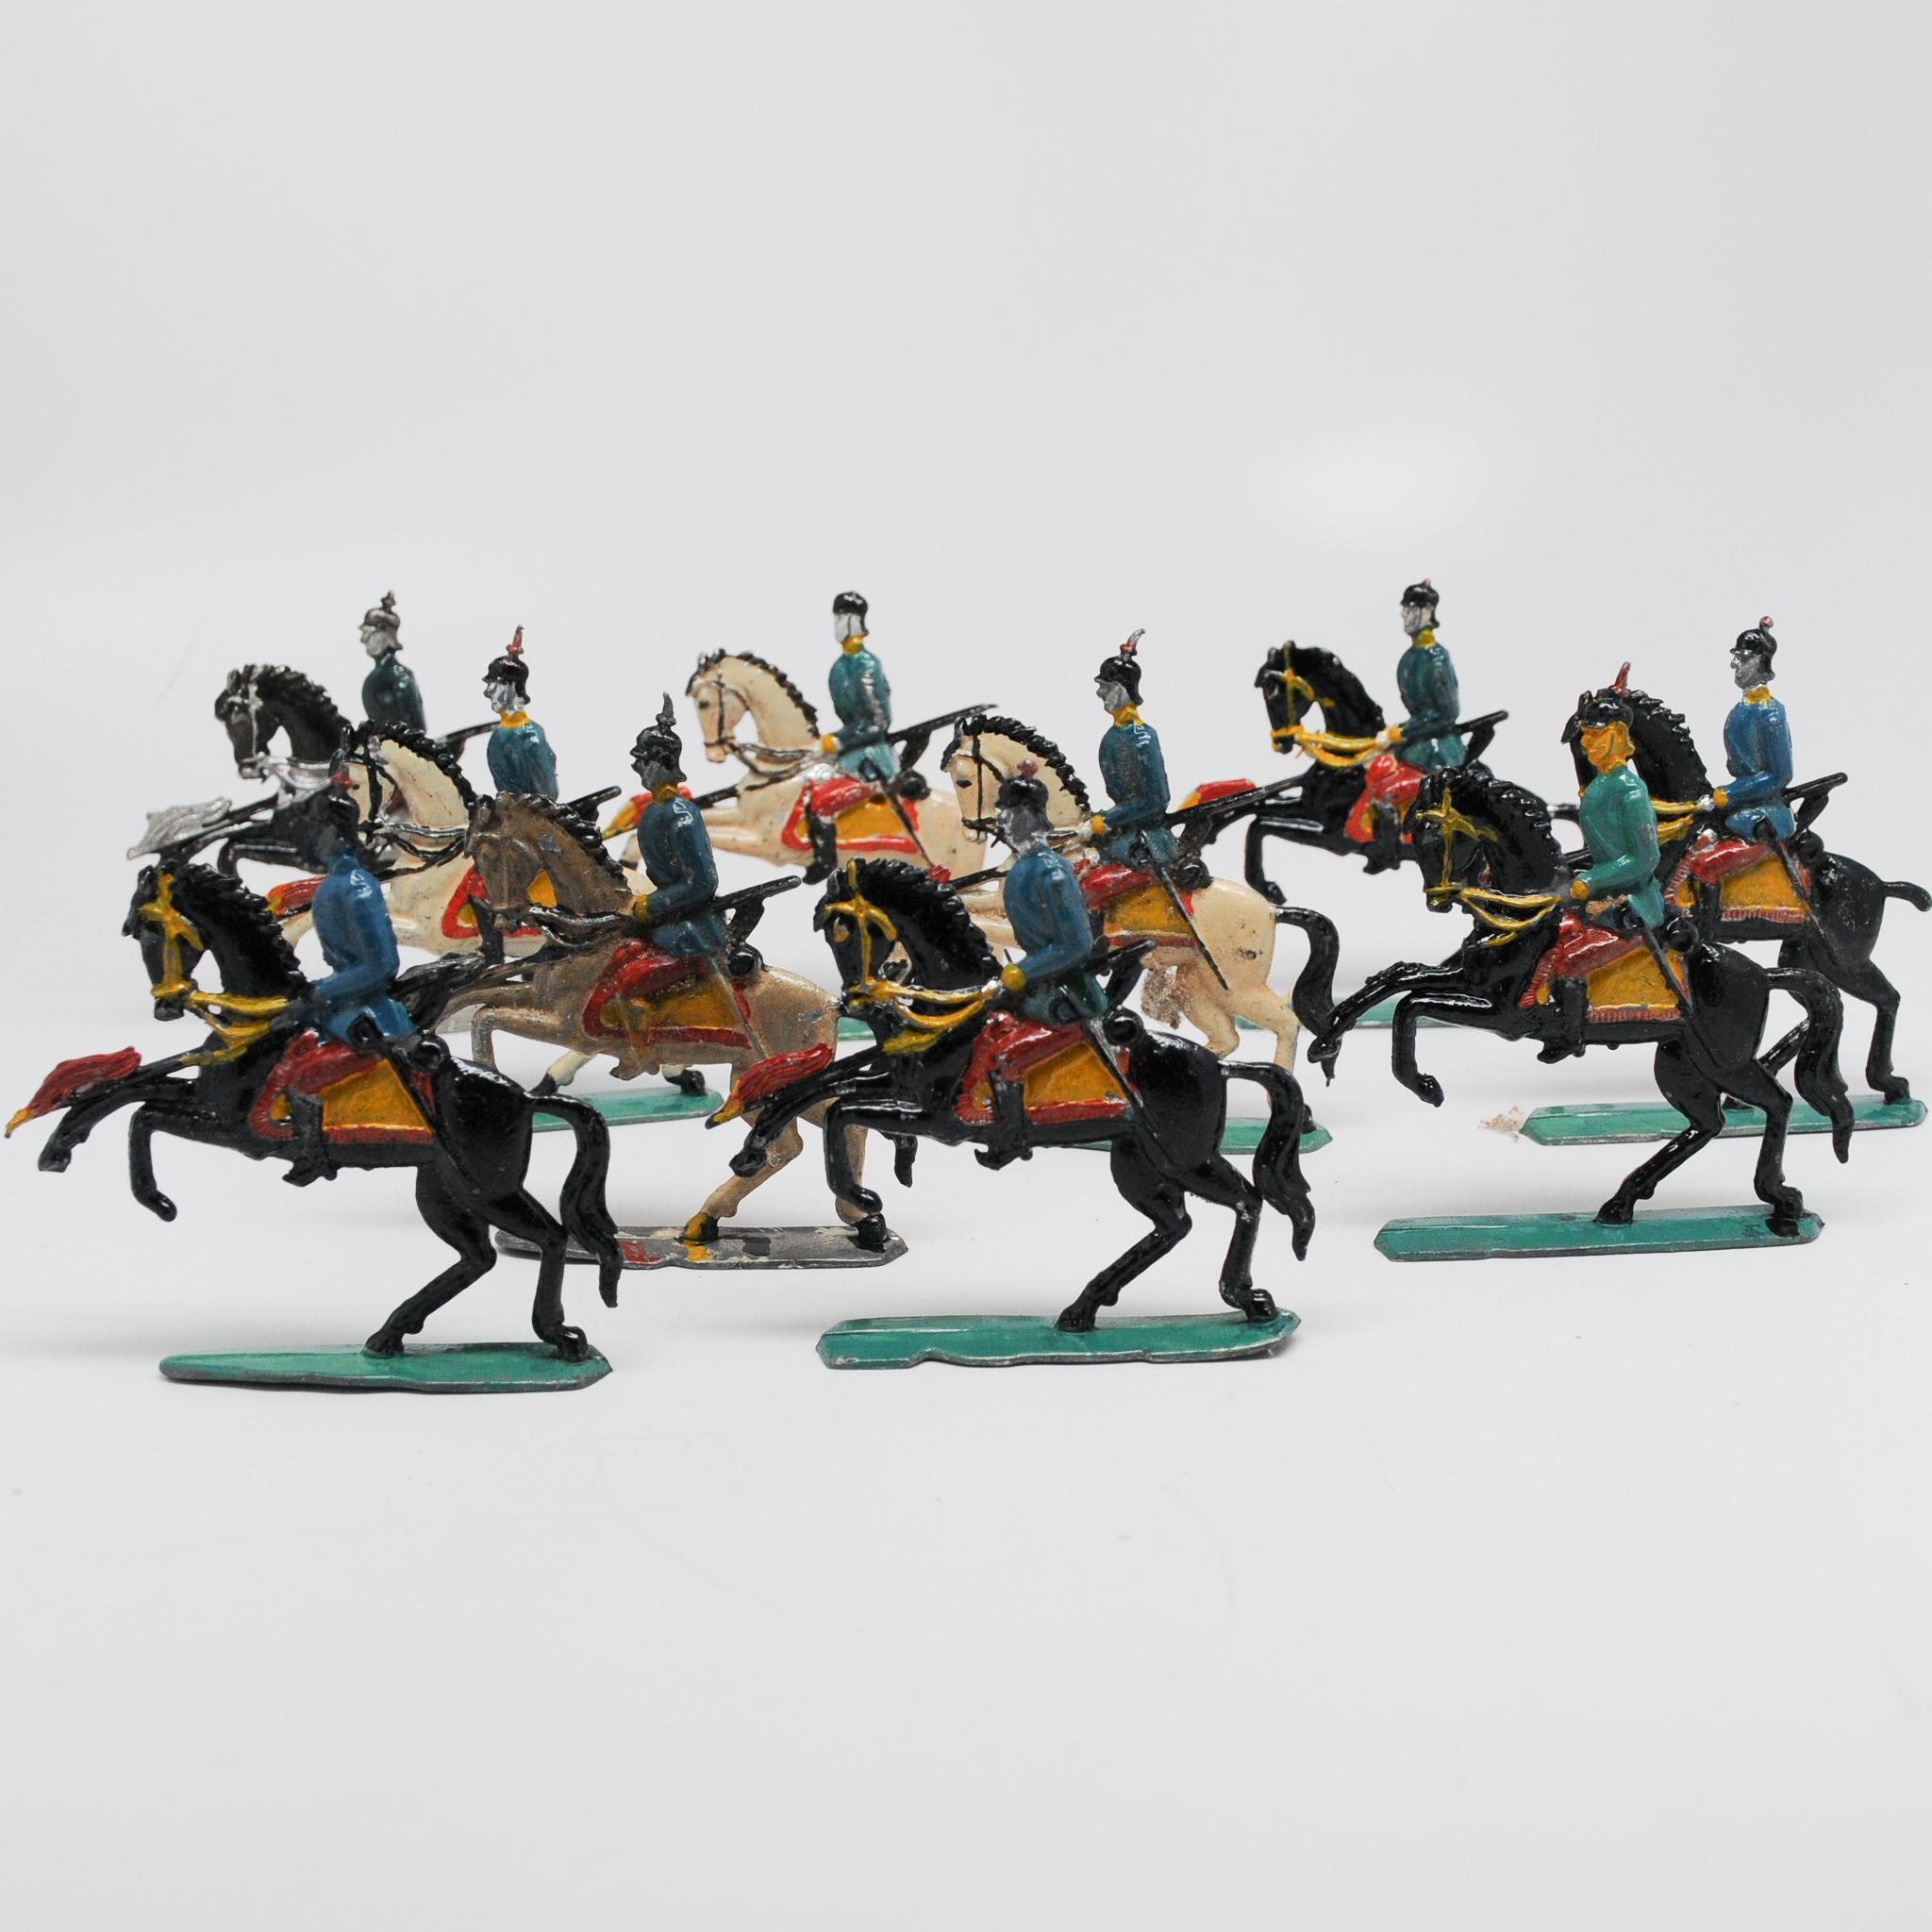 Very Colorful Set of Lead Soldiers